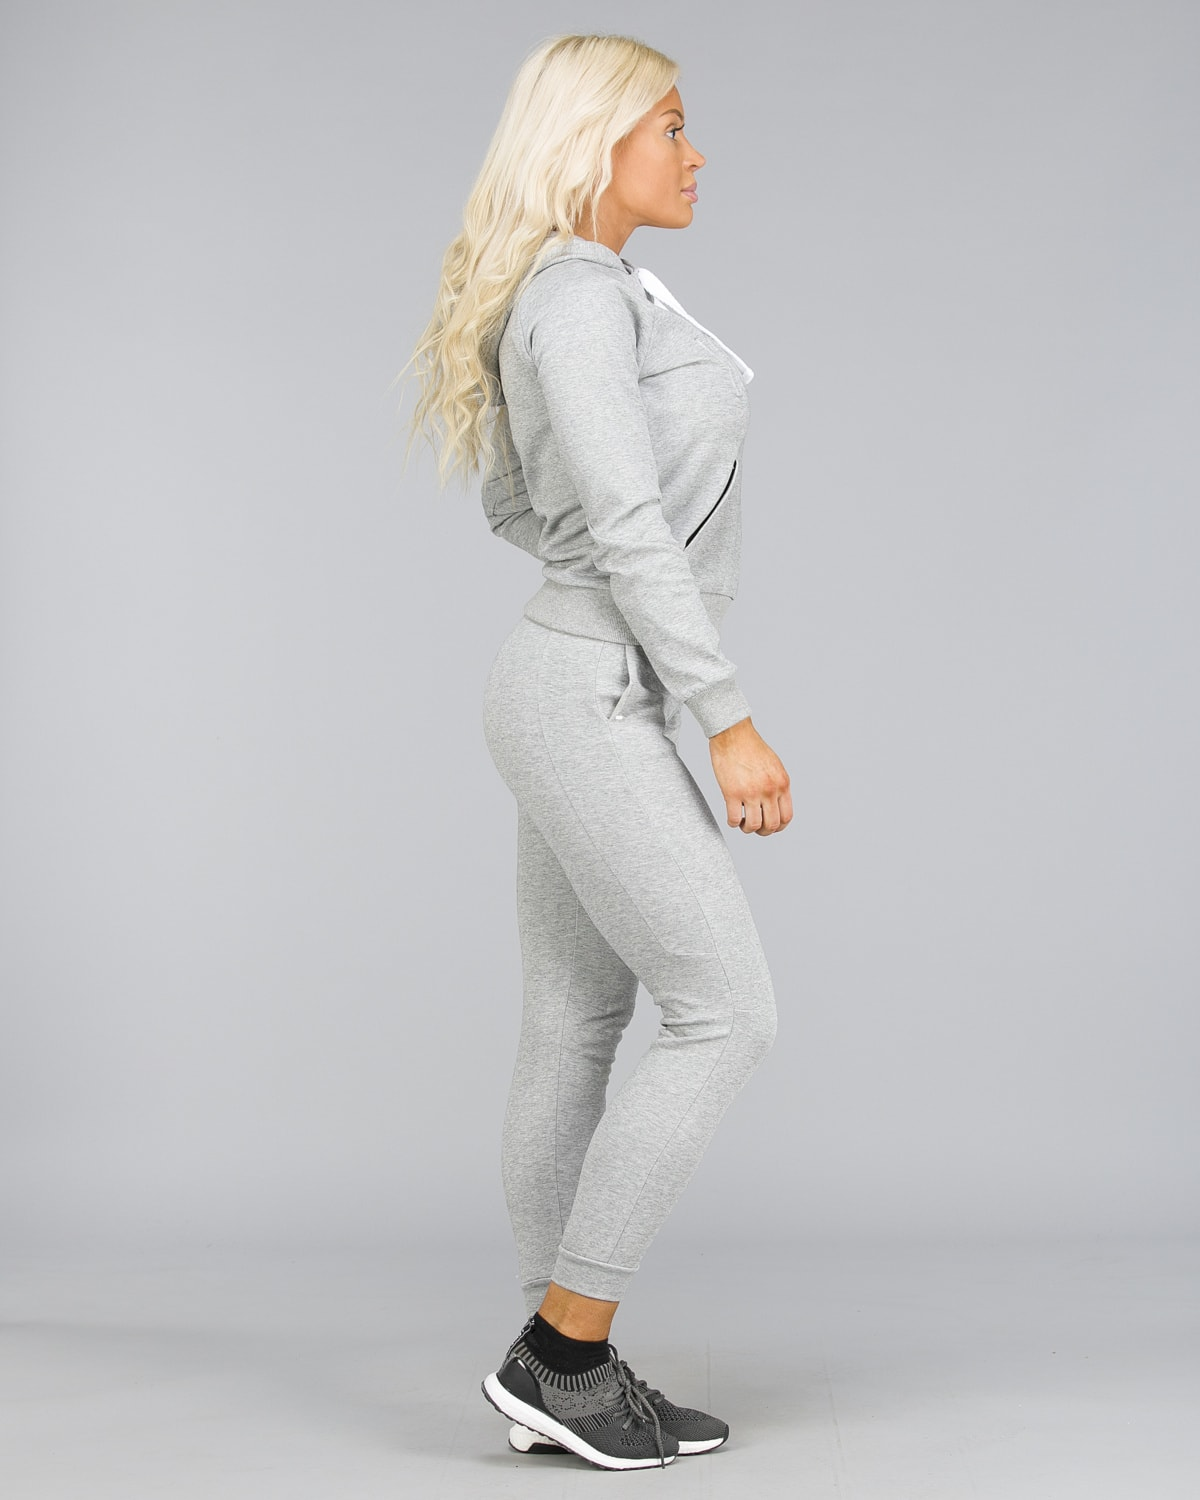 ICANIWILL – Sweat Pants – Light Grey d